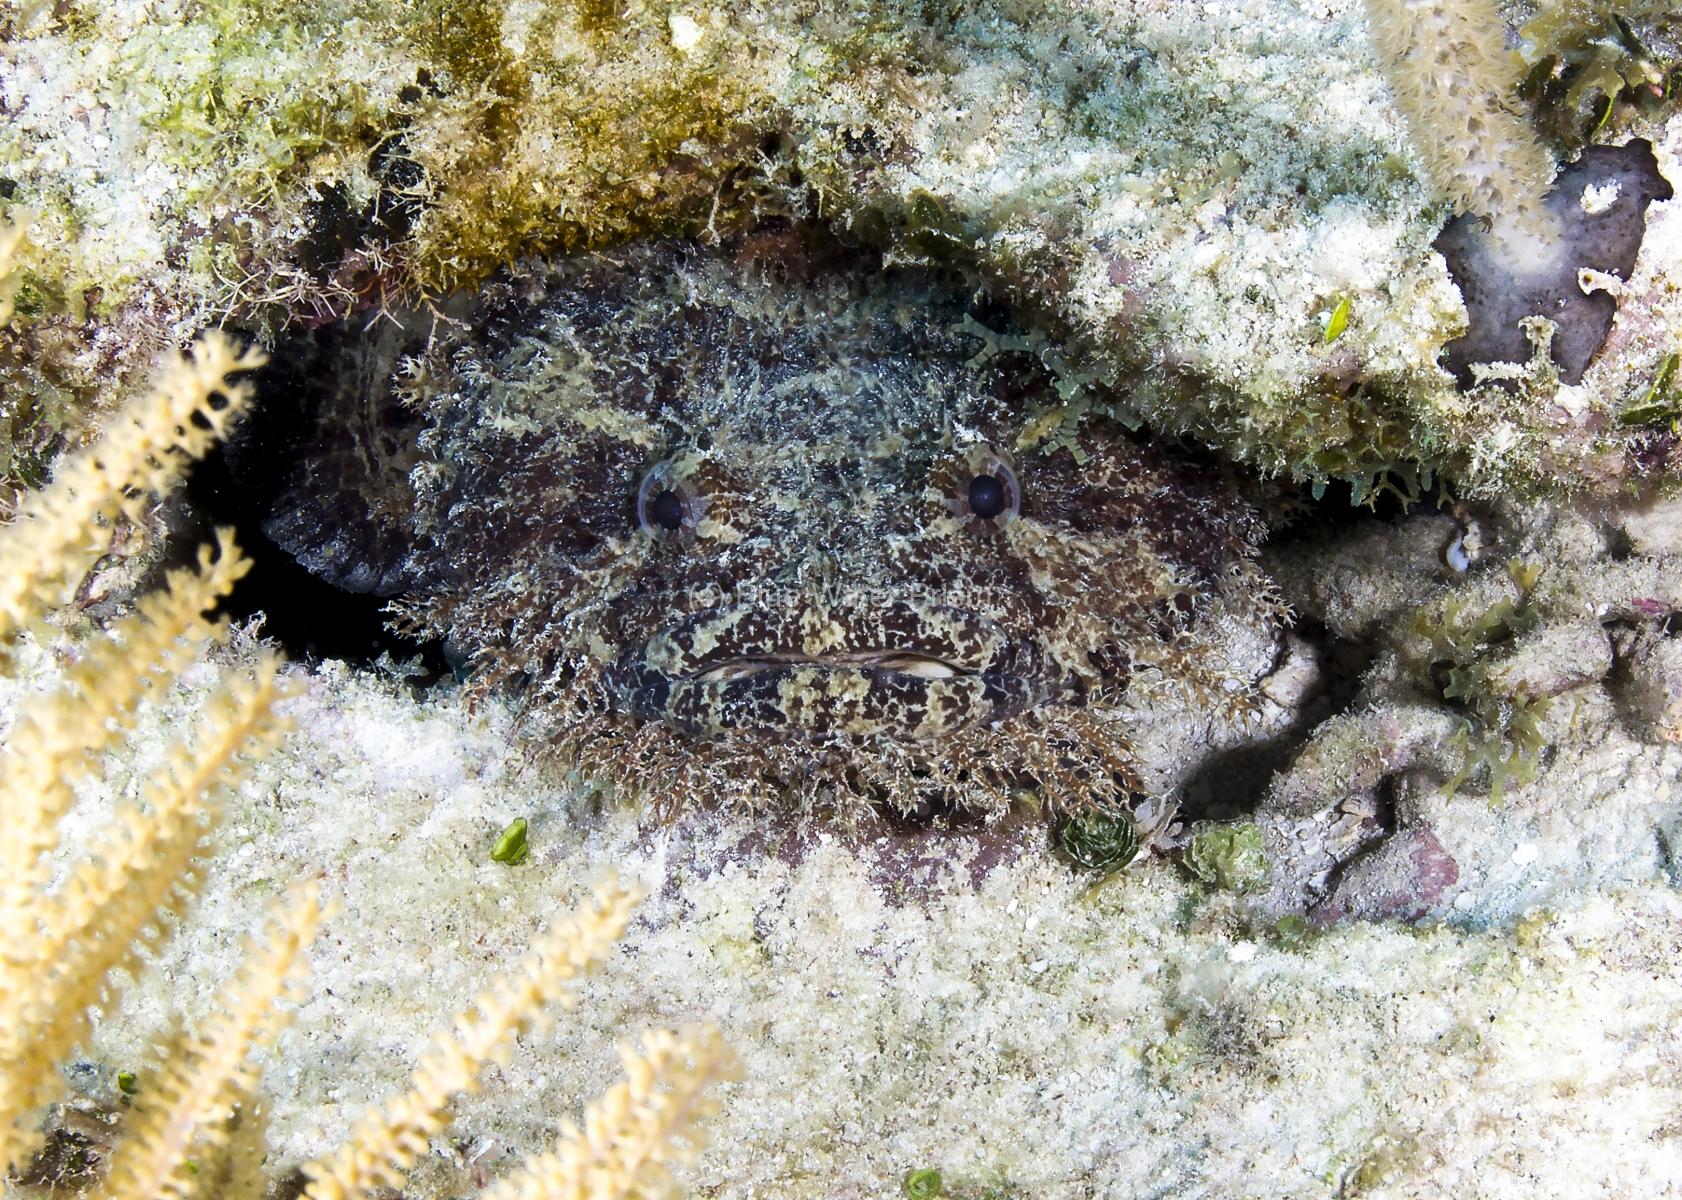 Large Eye Toadfish